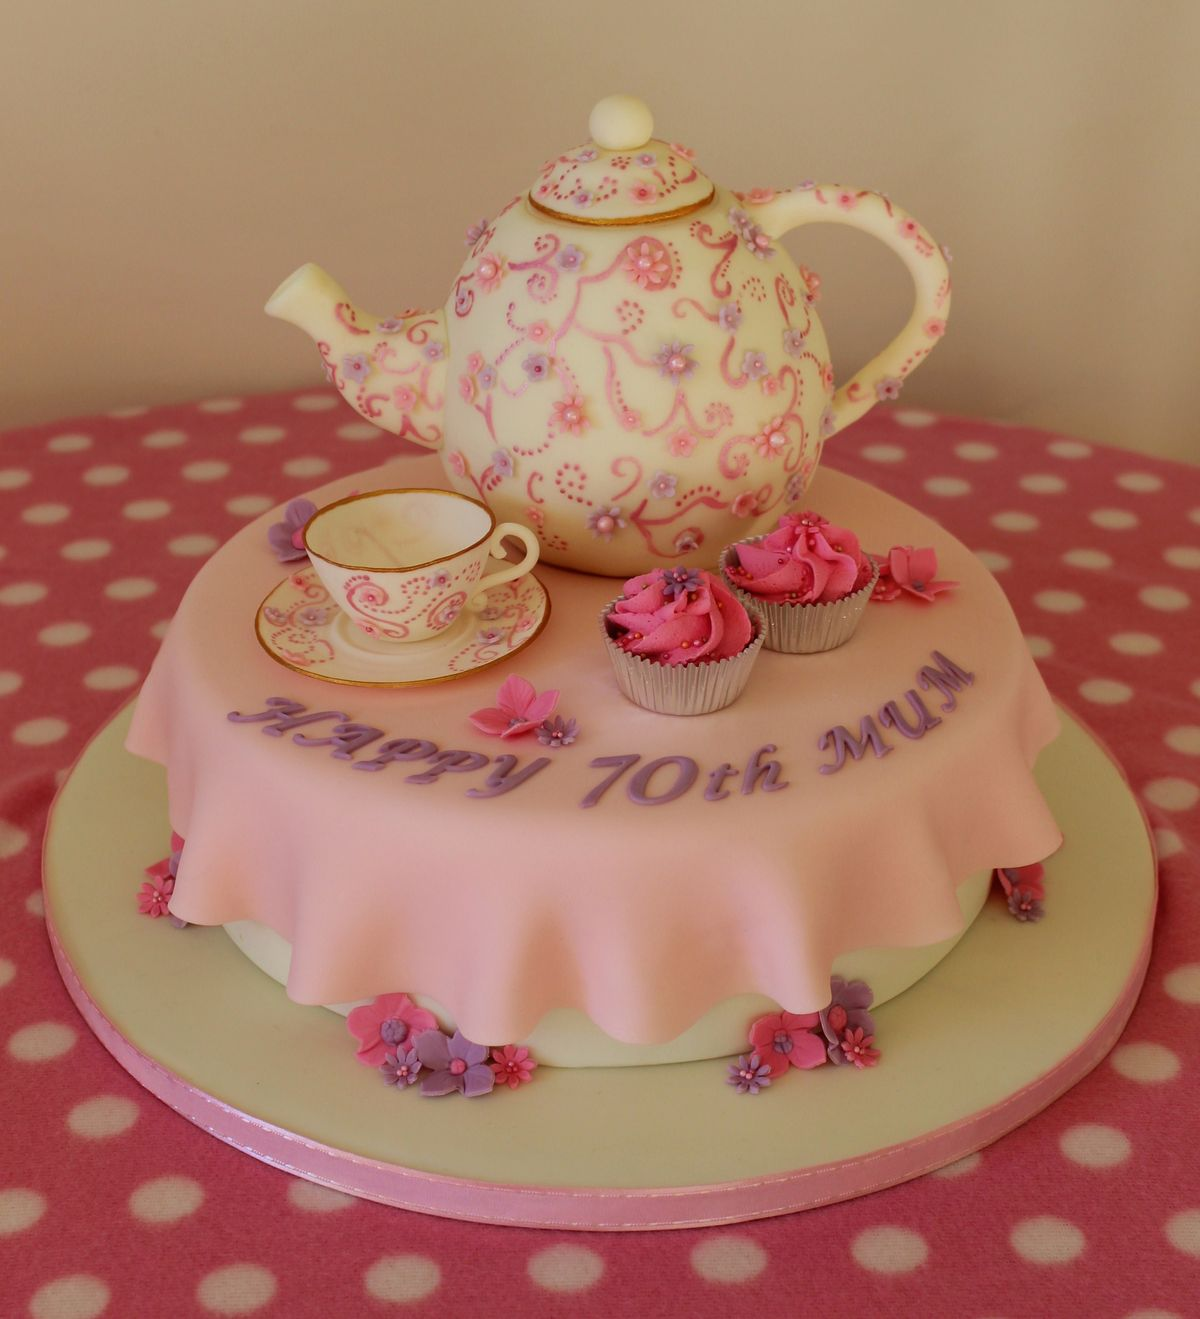 1000+ images about 70th on Pinterest 70th birthday cake ...